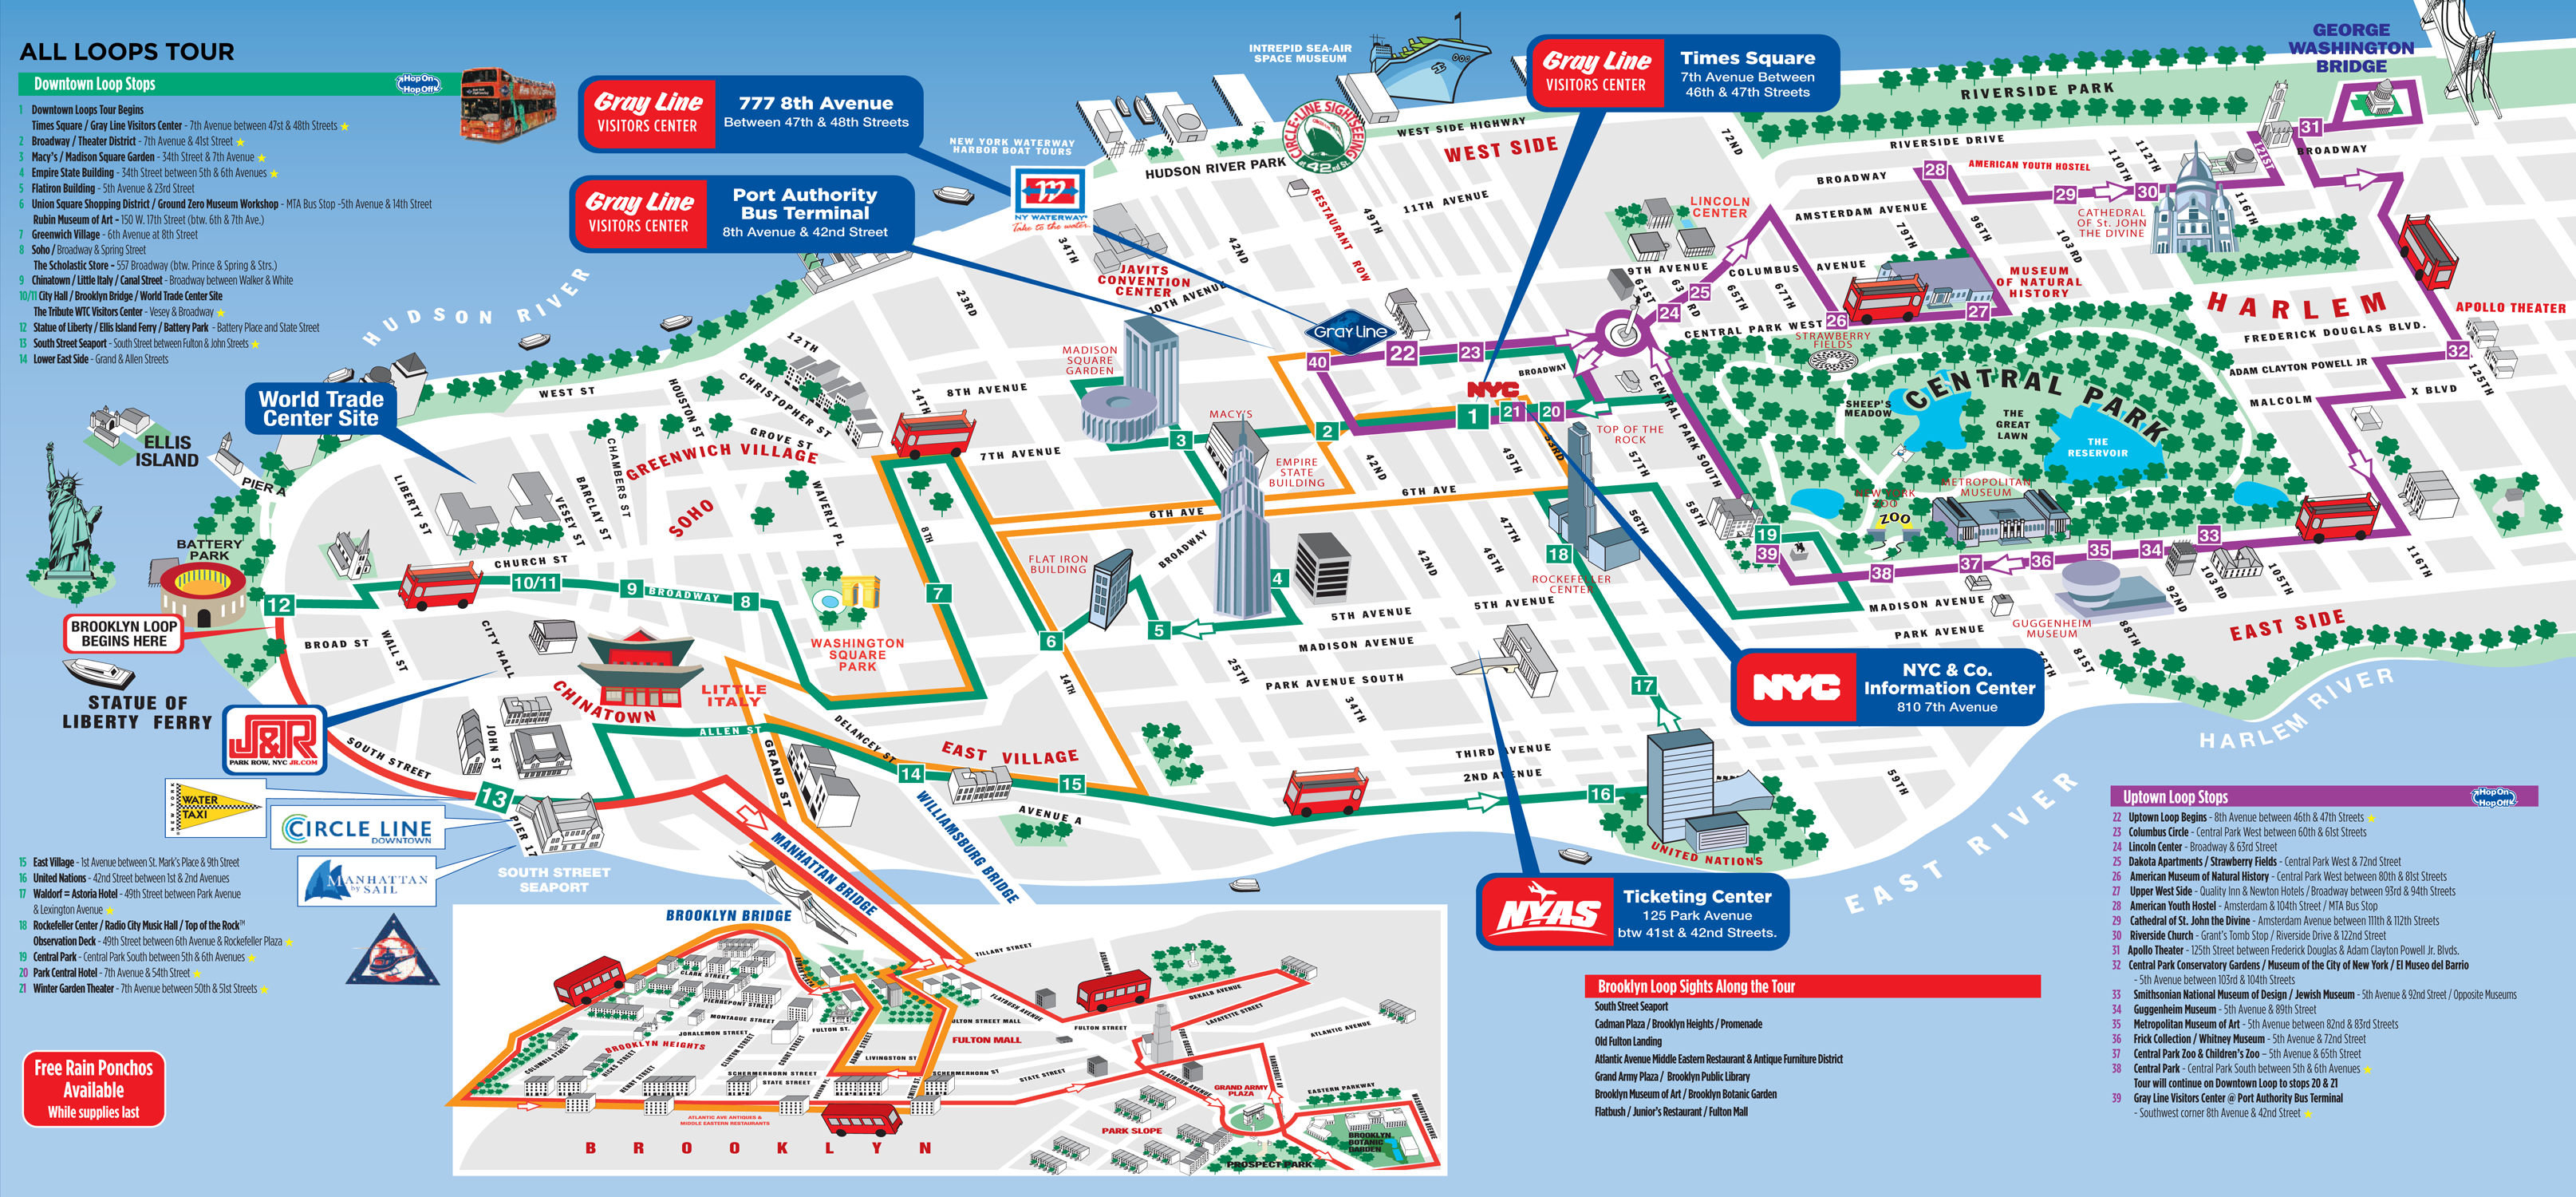 Tourist Map Of New York Download Travel Map New York | Travel Maps - New York Tourist Map Printable